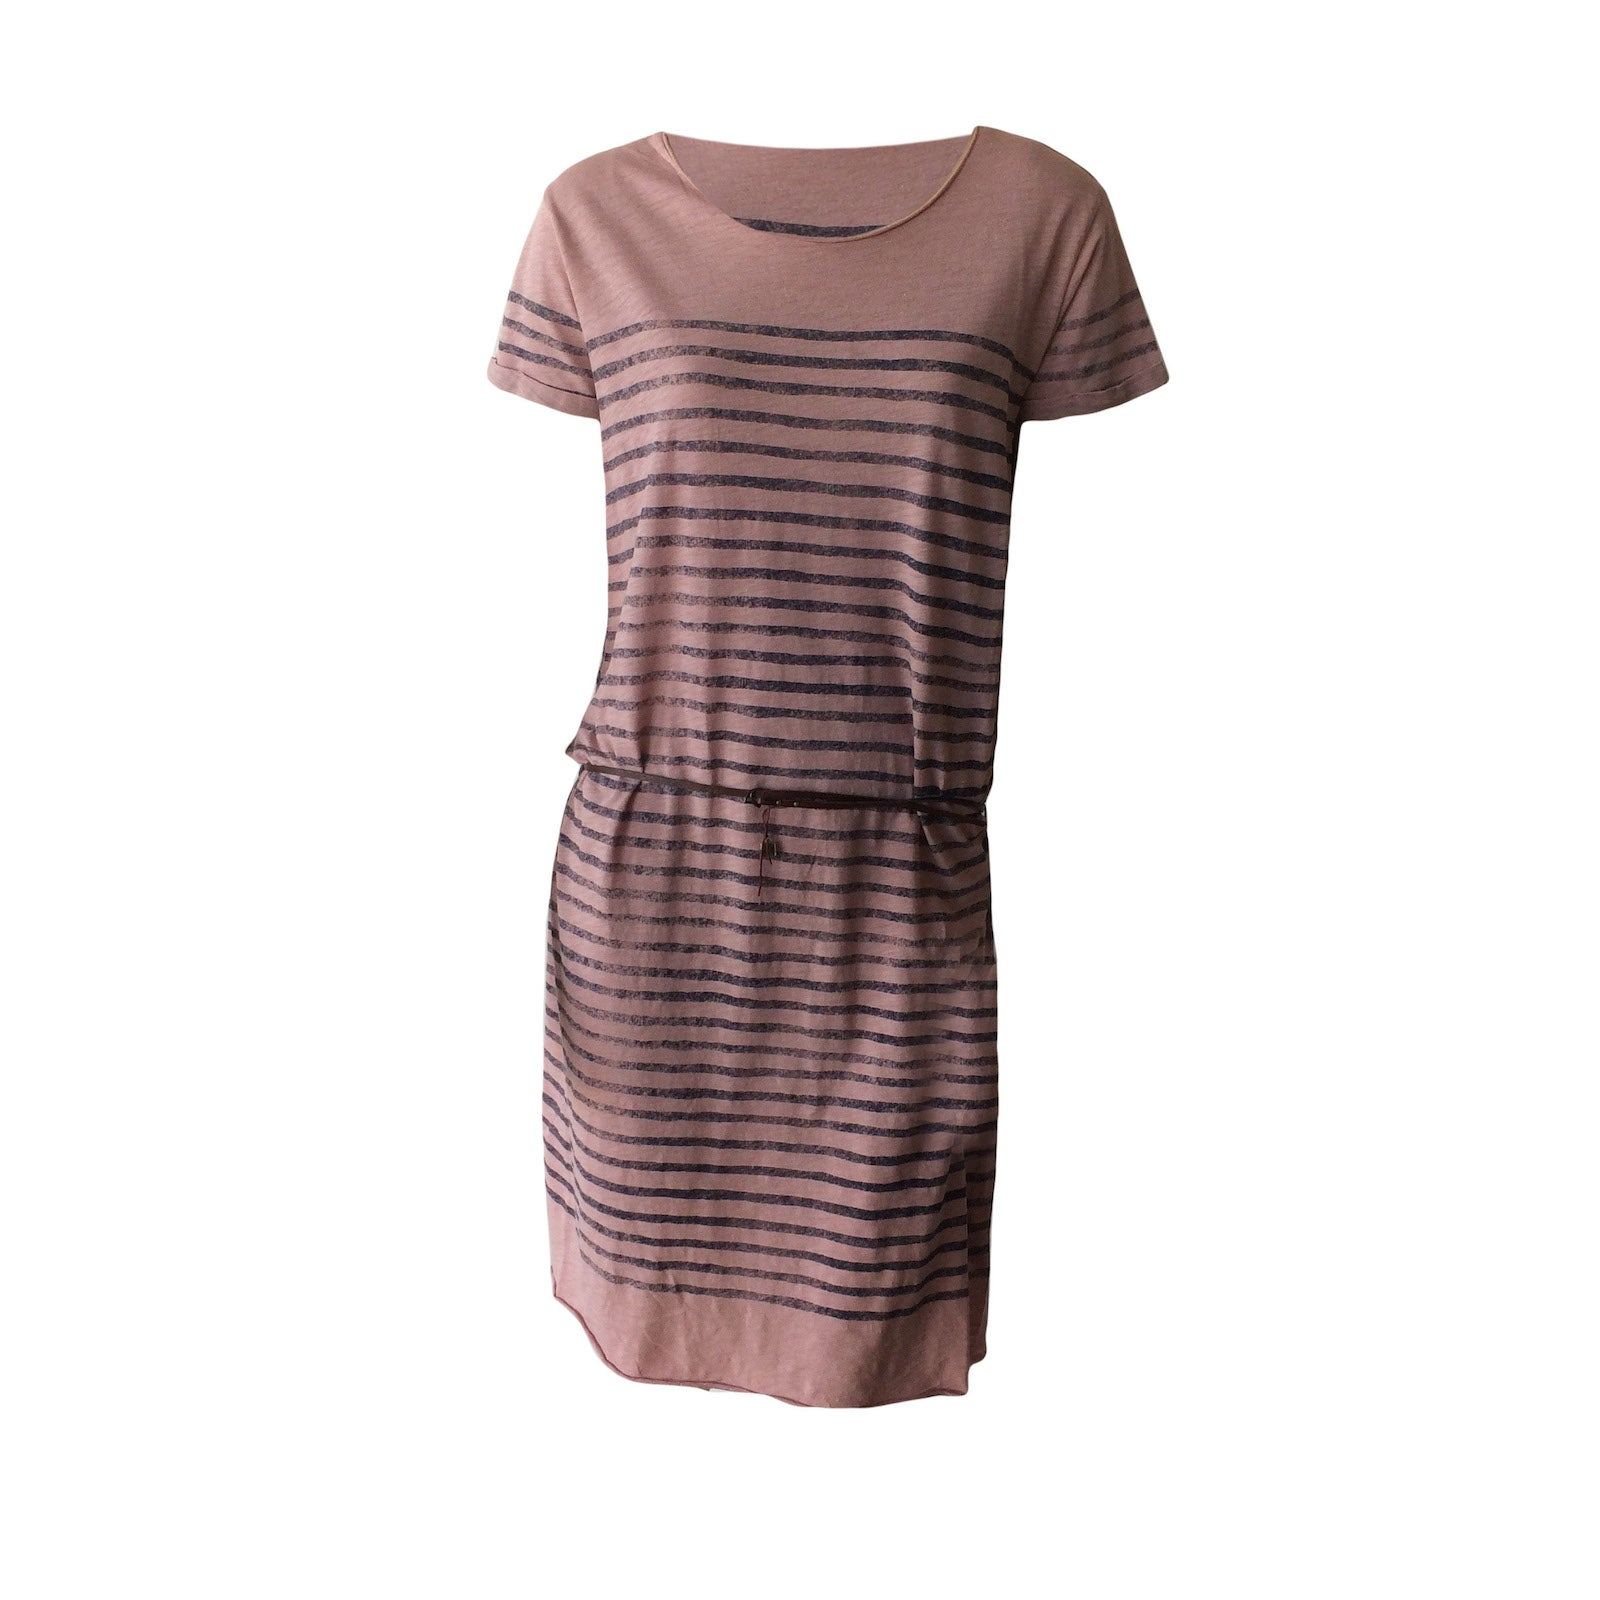 This striped pink glitter jersey dress by Dutch label Scotch R